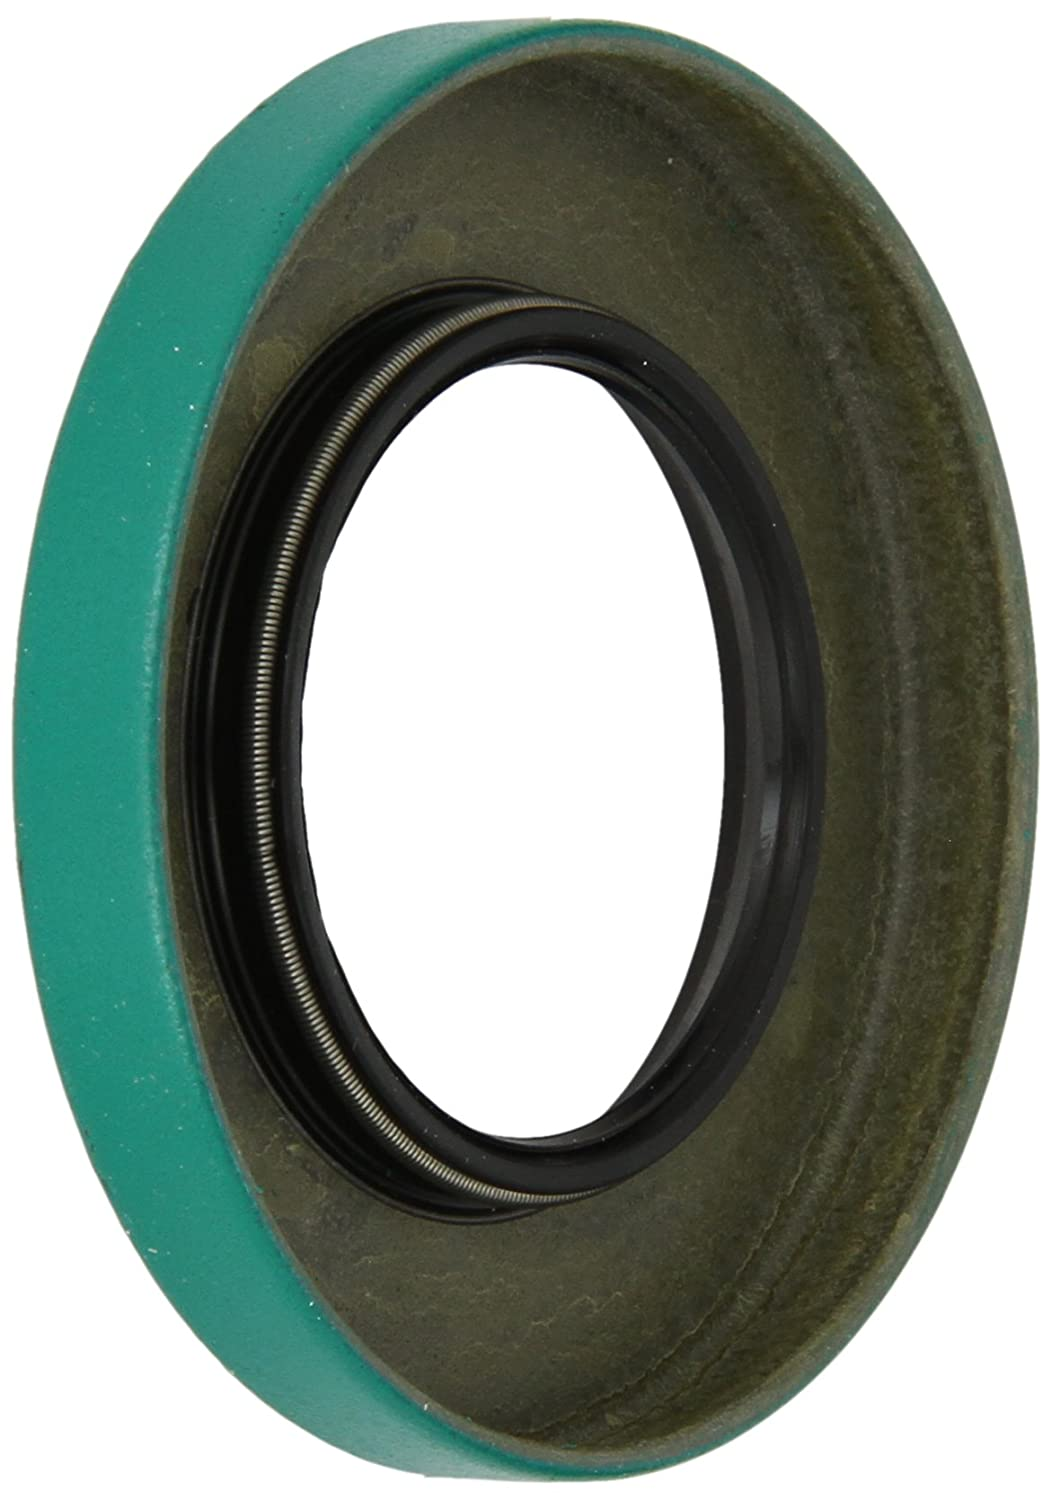 SKF 13810 LDS Small Bore Seal R CRW1 Code 1 Inch Sale price Lip Inventory cleanup selling sale Style